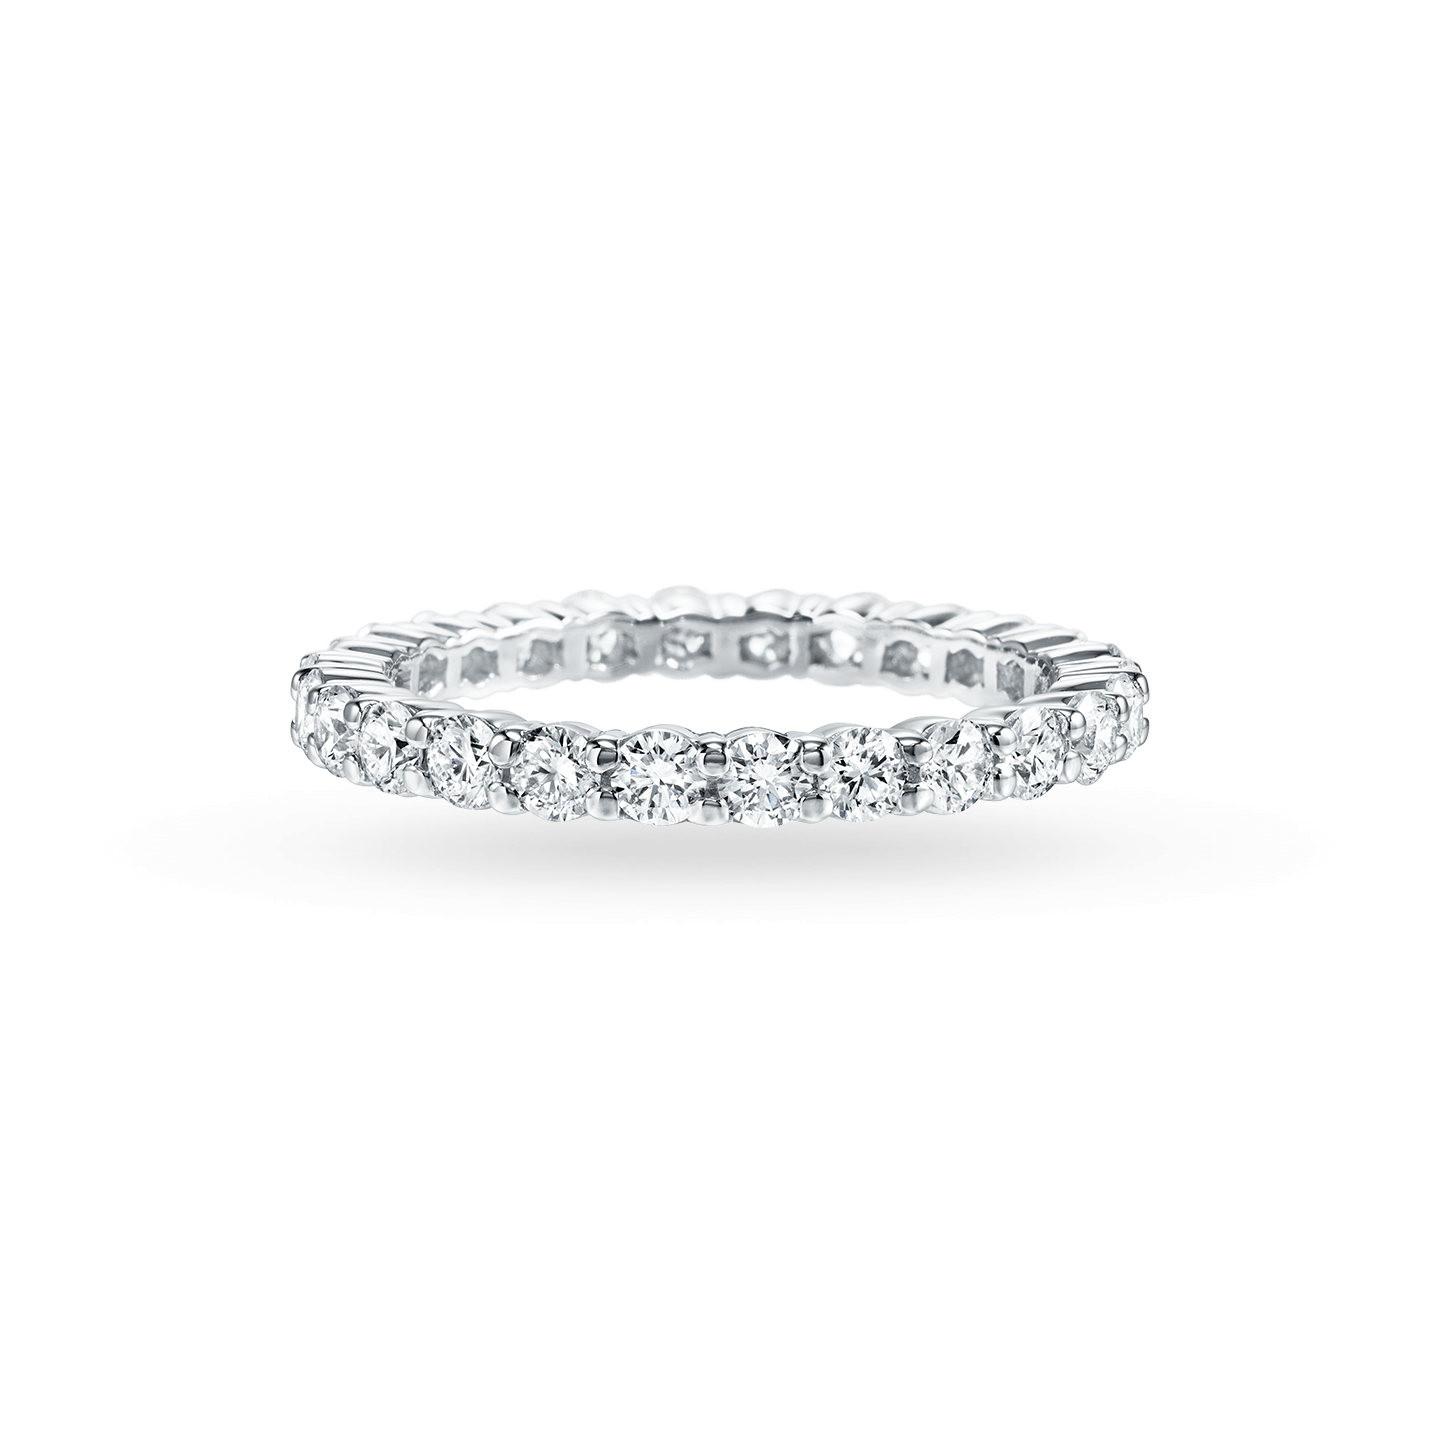 Prong-Set Round Brilliant Diamond Wedding Band, Product Image 2